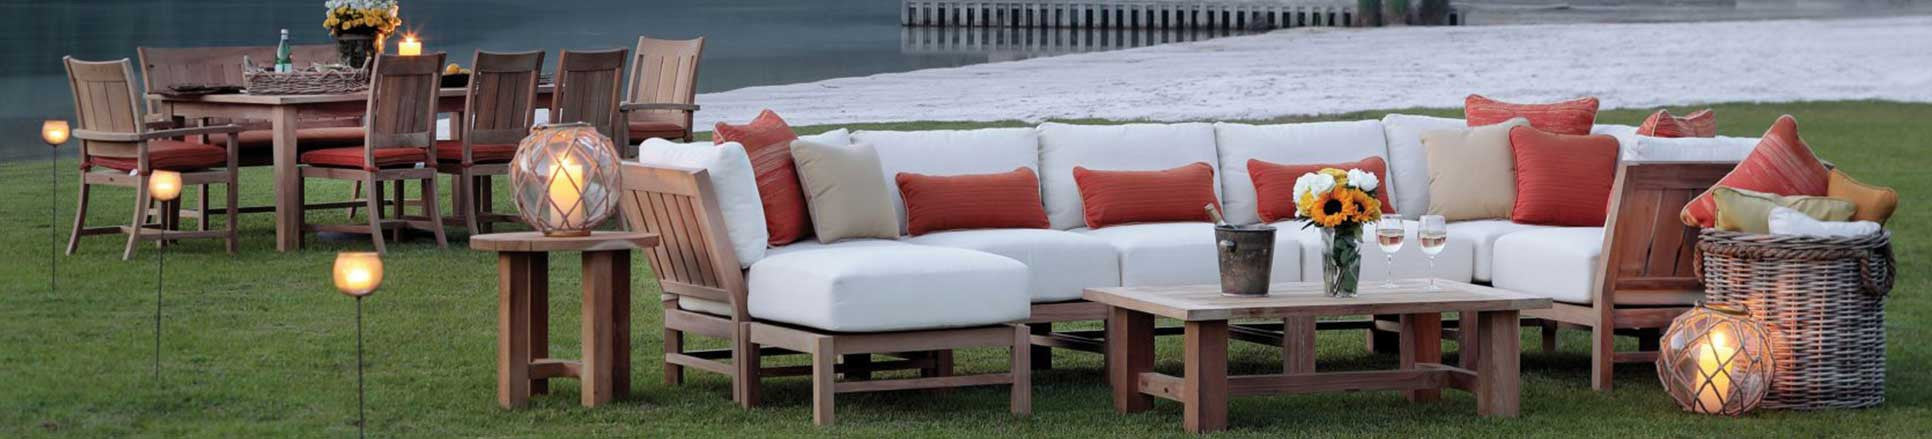 San Diego Patio Furniture Patio Furniture San Marcos Skylars - Outdoor furniture san diego